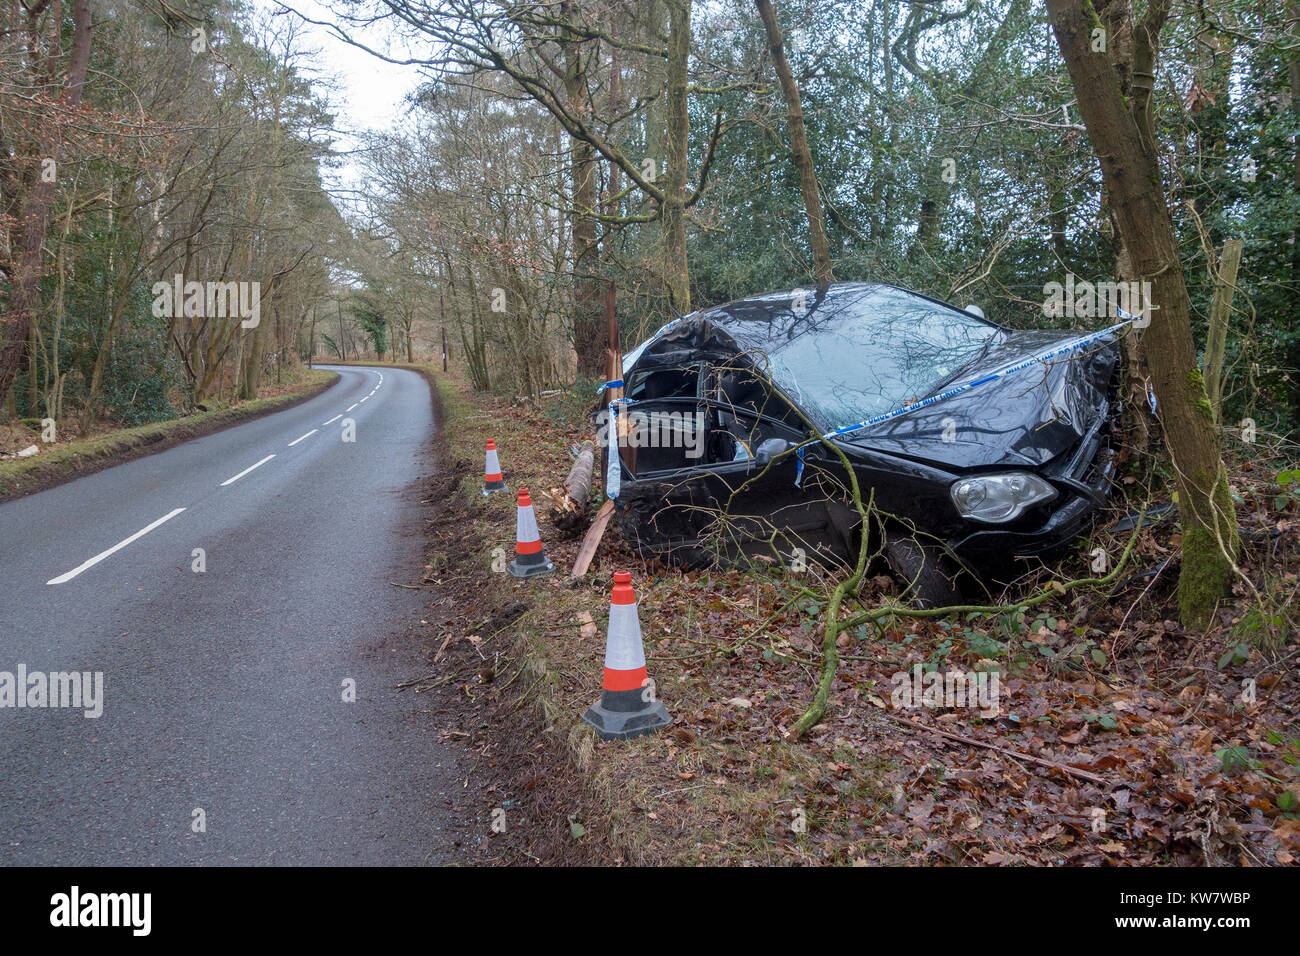 A crashed car, a black Volkswagen Polo, in a country lane surrounded by Police tape having left the road and hit - Stock Image